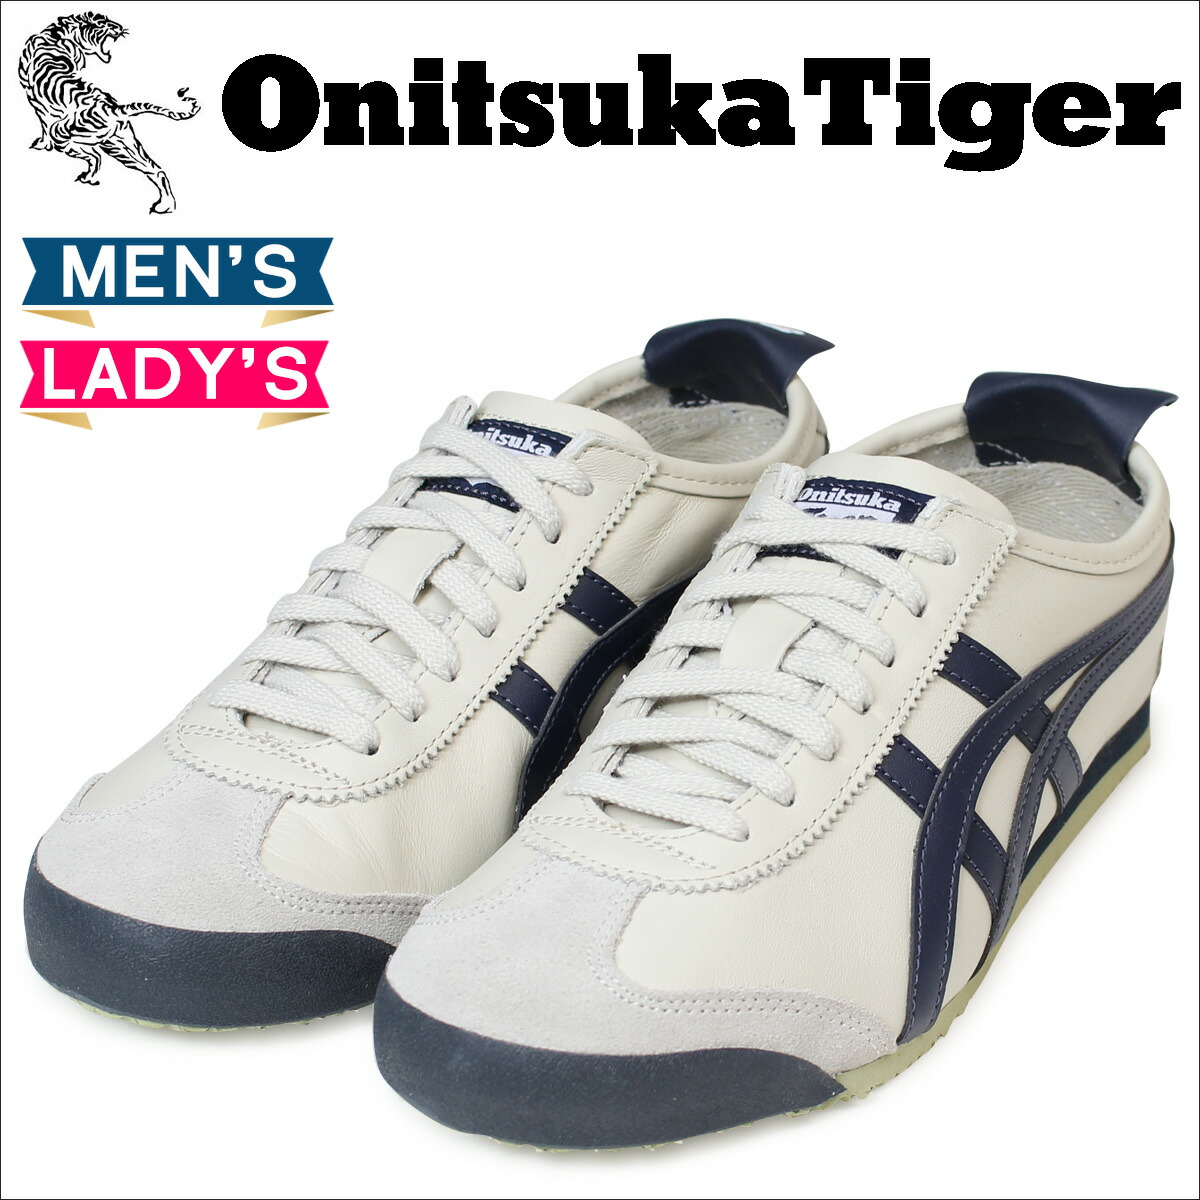 allsports asics onitsuka tiger asics mexico 66 sneakers onitsuka tiger mexico 66 leather x. Black Bedroom Furniture Sets. Home Design Ideas